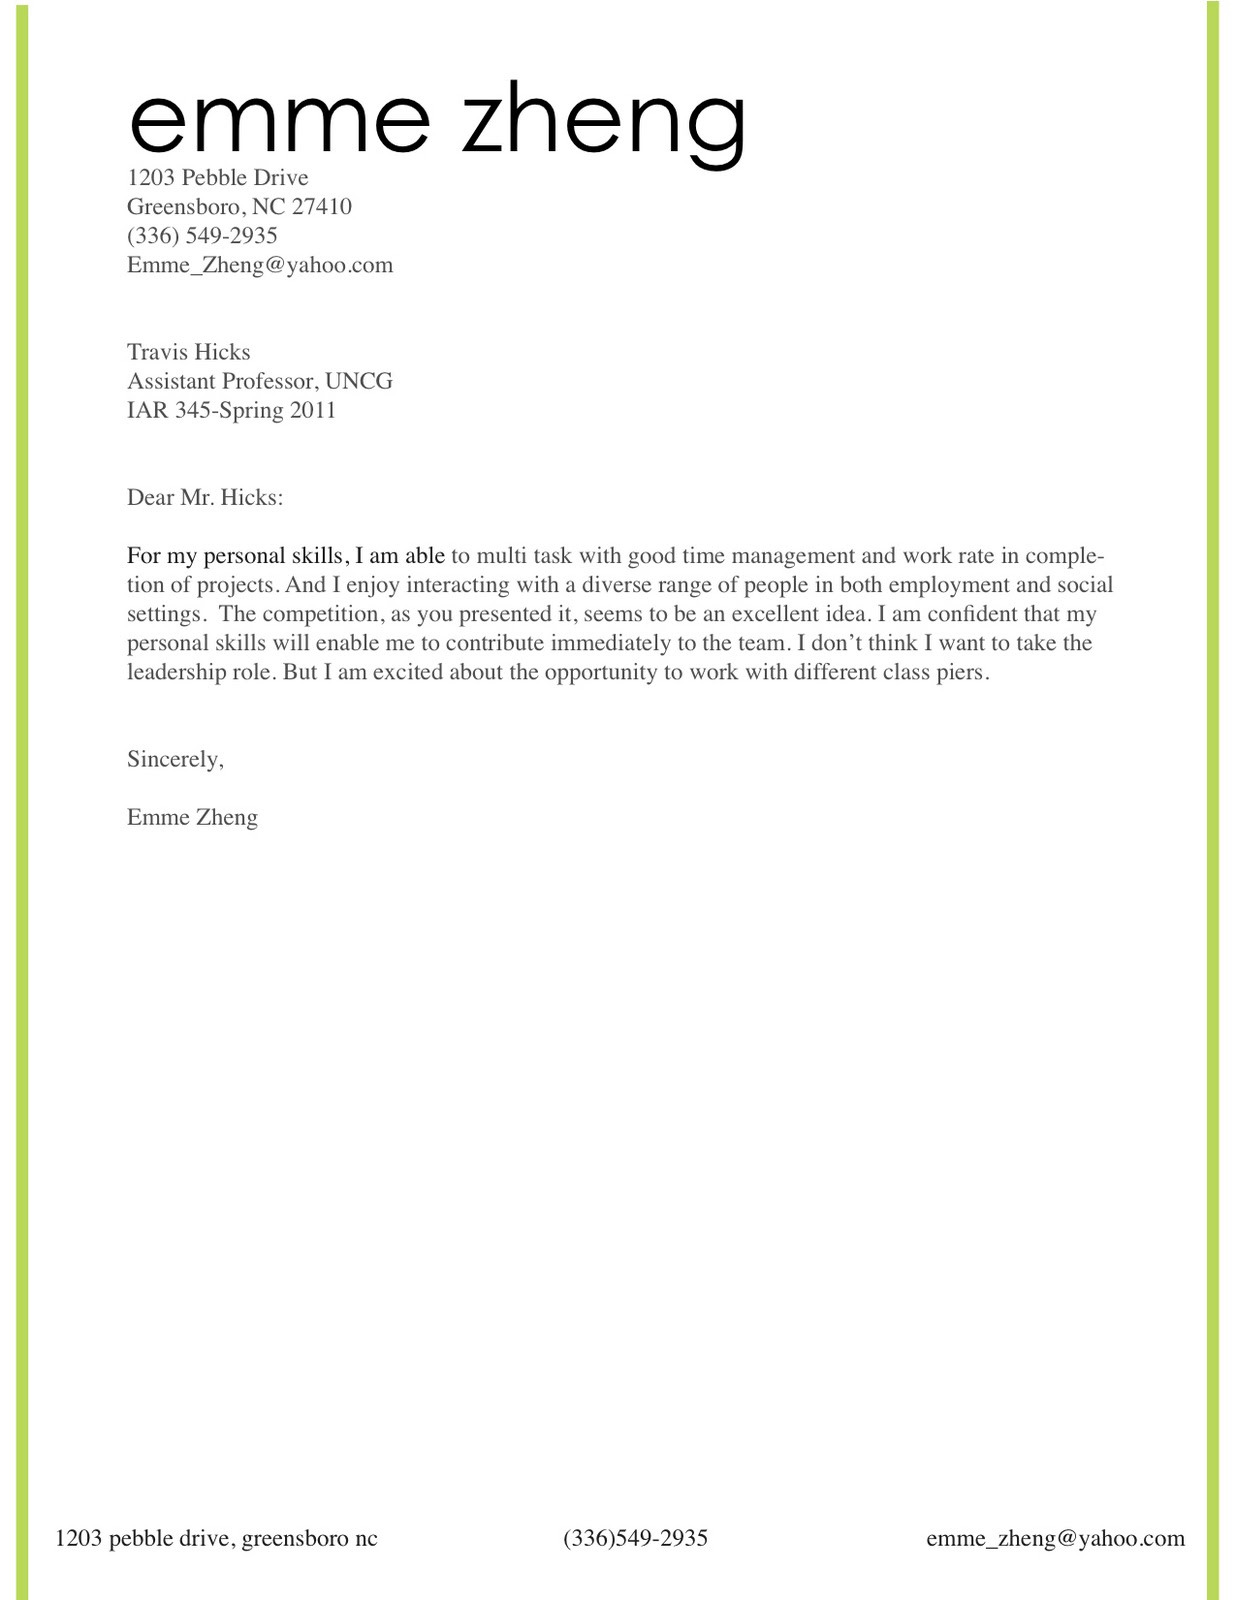 How to Format a Cover Letter (With Tips and Examples)